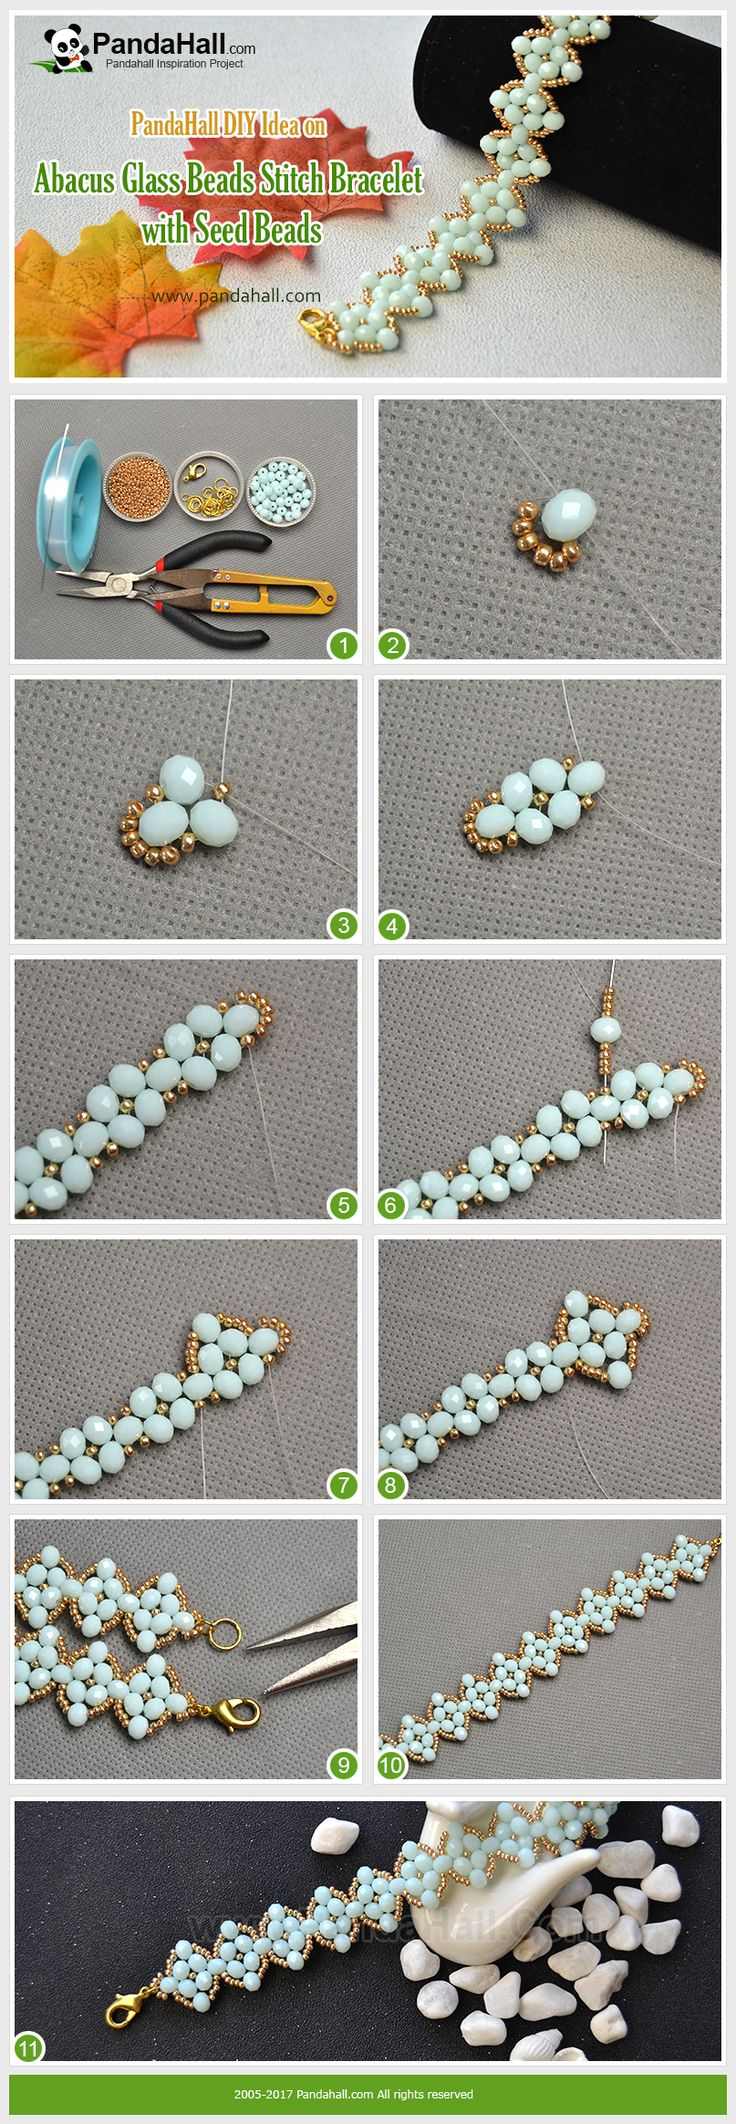 Pandahall DIY Craft on Abacus Glass Beads Stitch Bracelet with Seed Beads Use gold abacus seed beads and pale turquoise abacus glass beads to stitch a wide bracelet, and you will be surprised at the smart way!